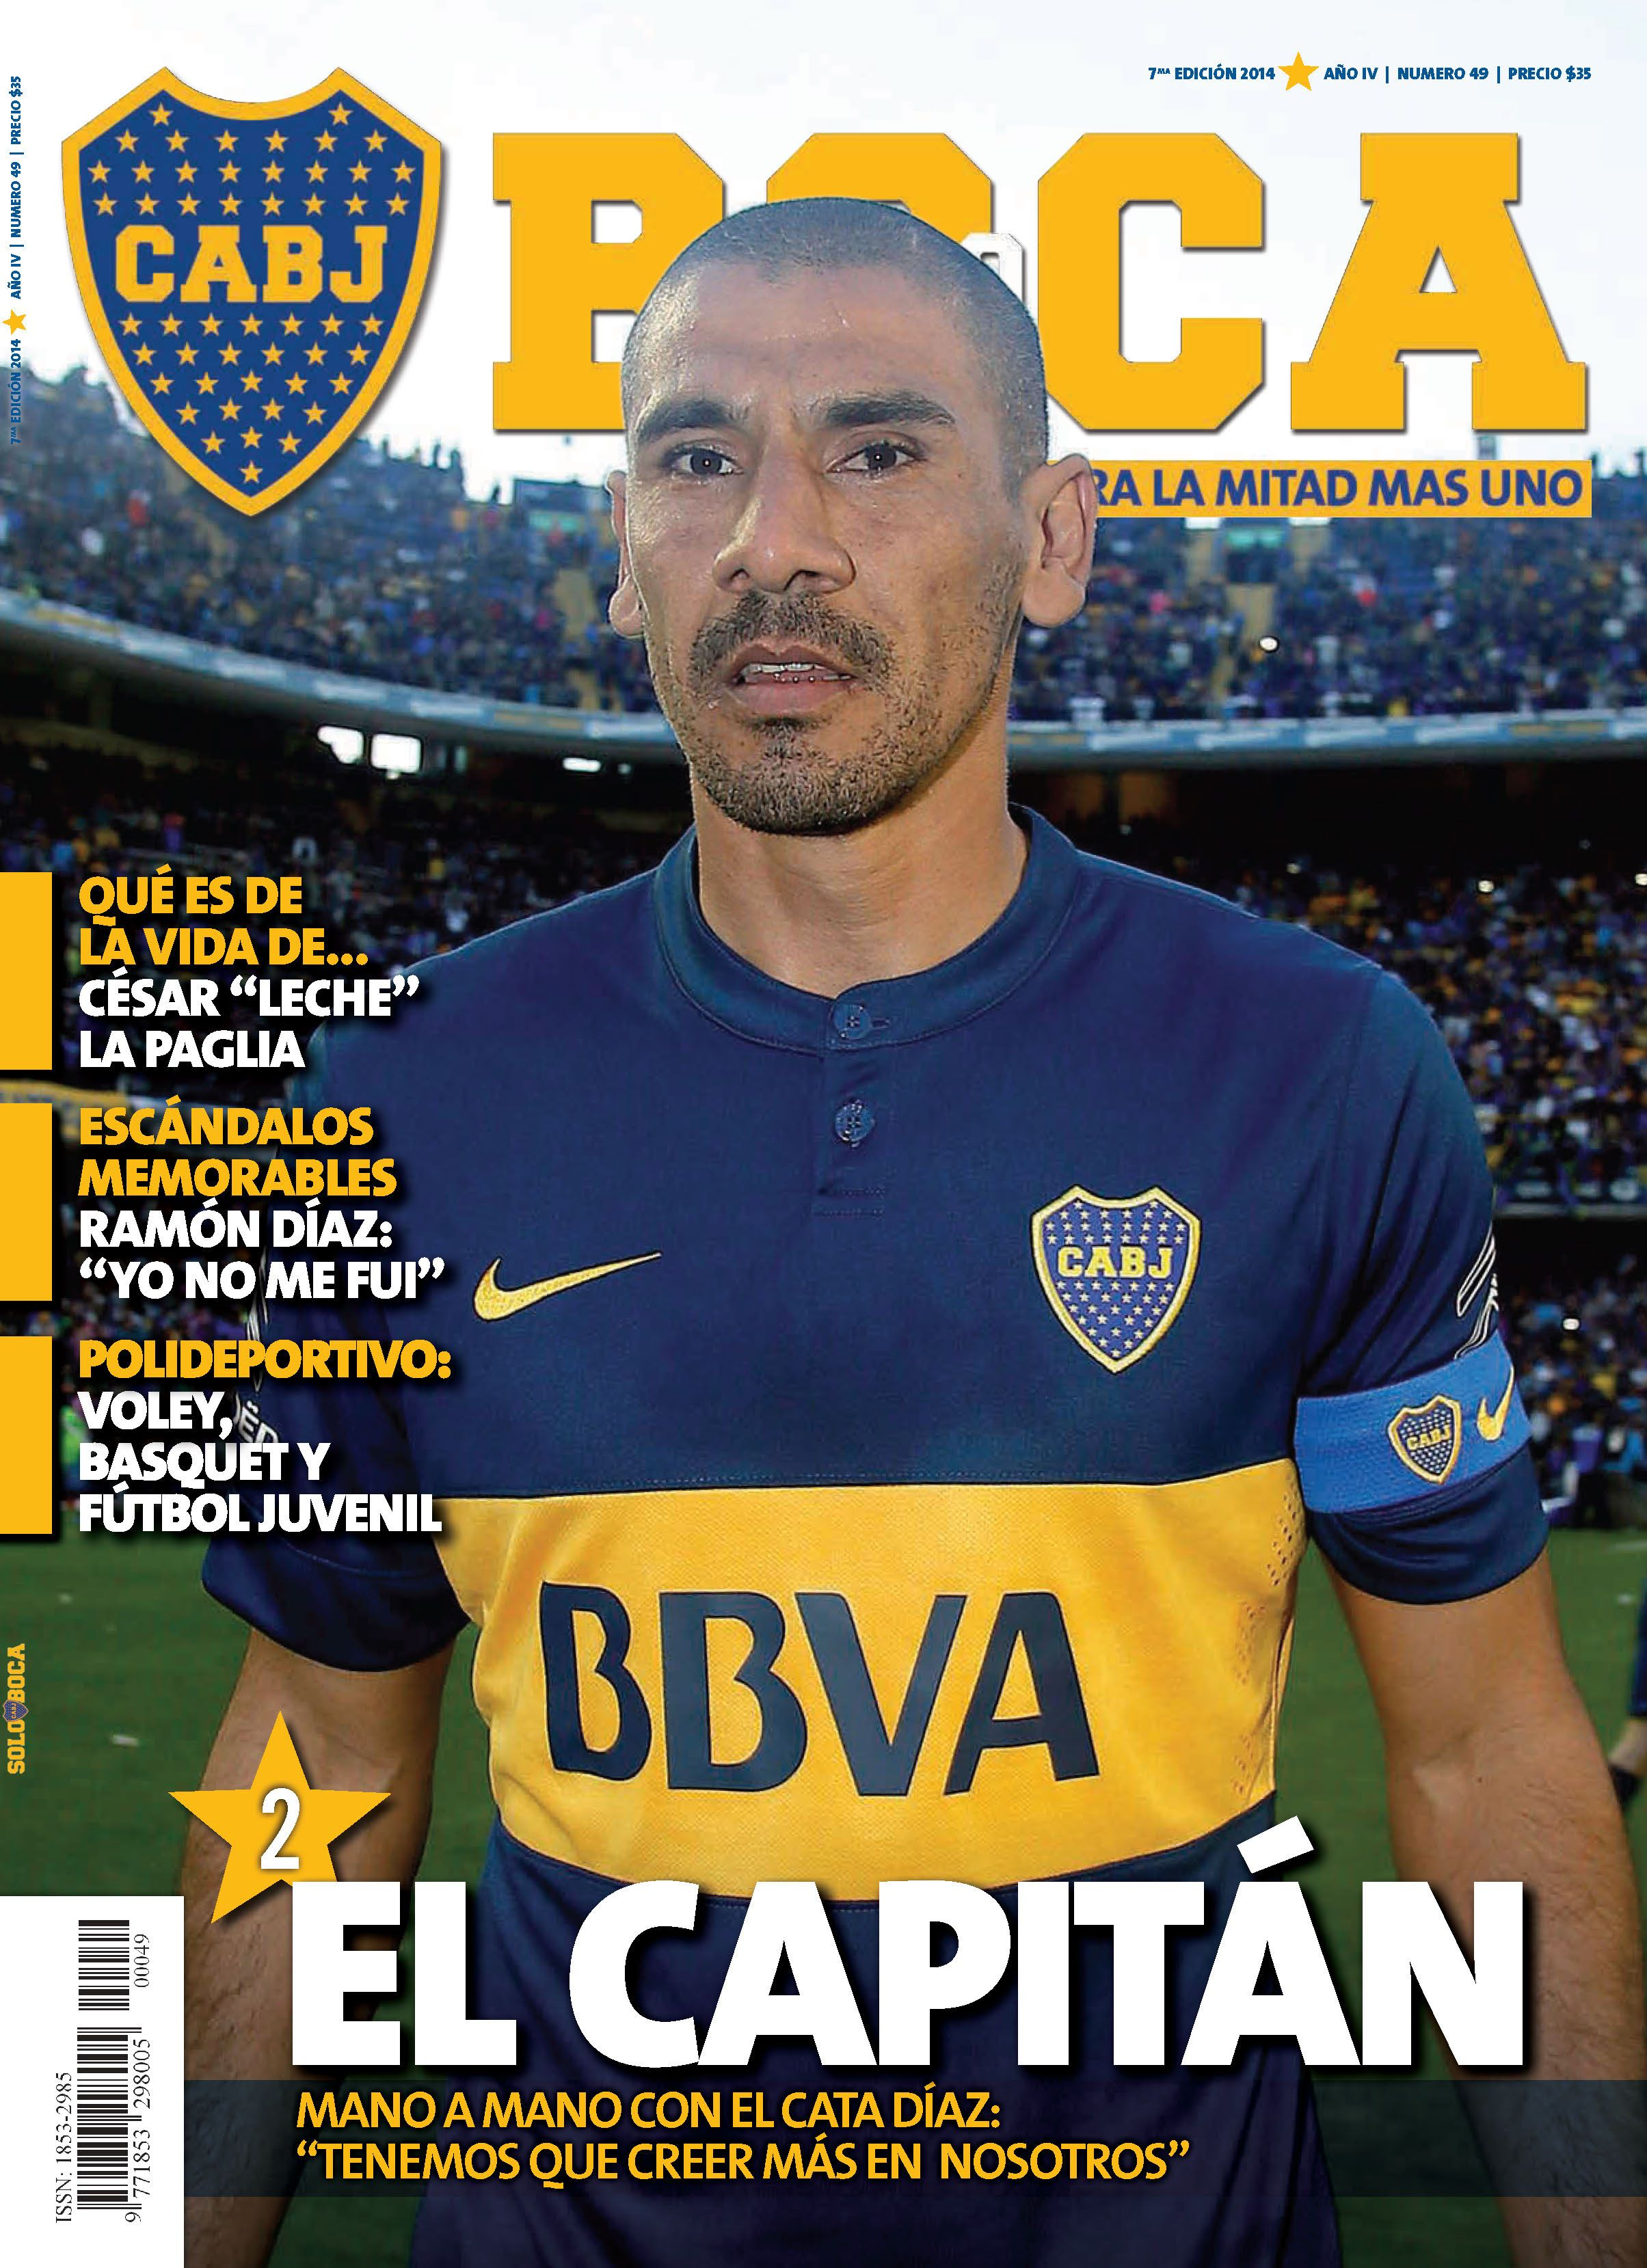 SoloBoca 7ma Edición 2014 edition - Read the digital edition by Magzter on your iPad, iPhone, Android, Tablet Devices, Windows 8, PC, Mac and the Web.